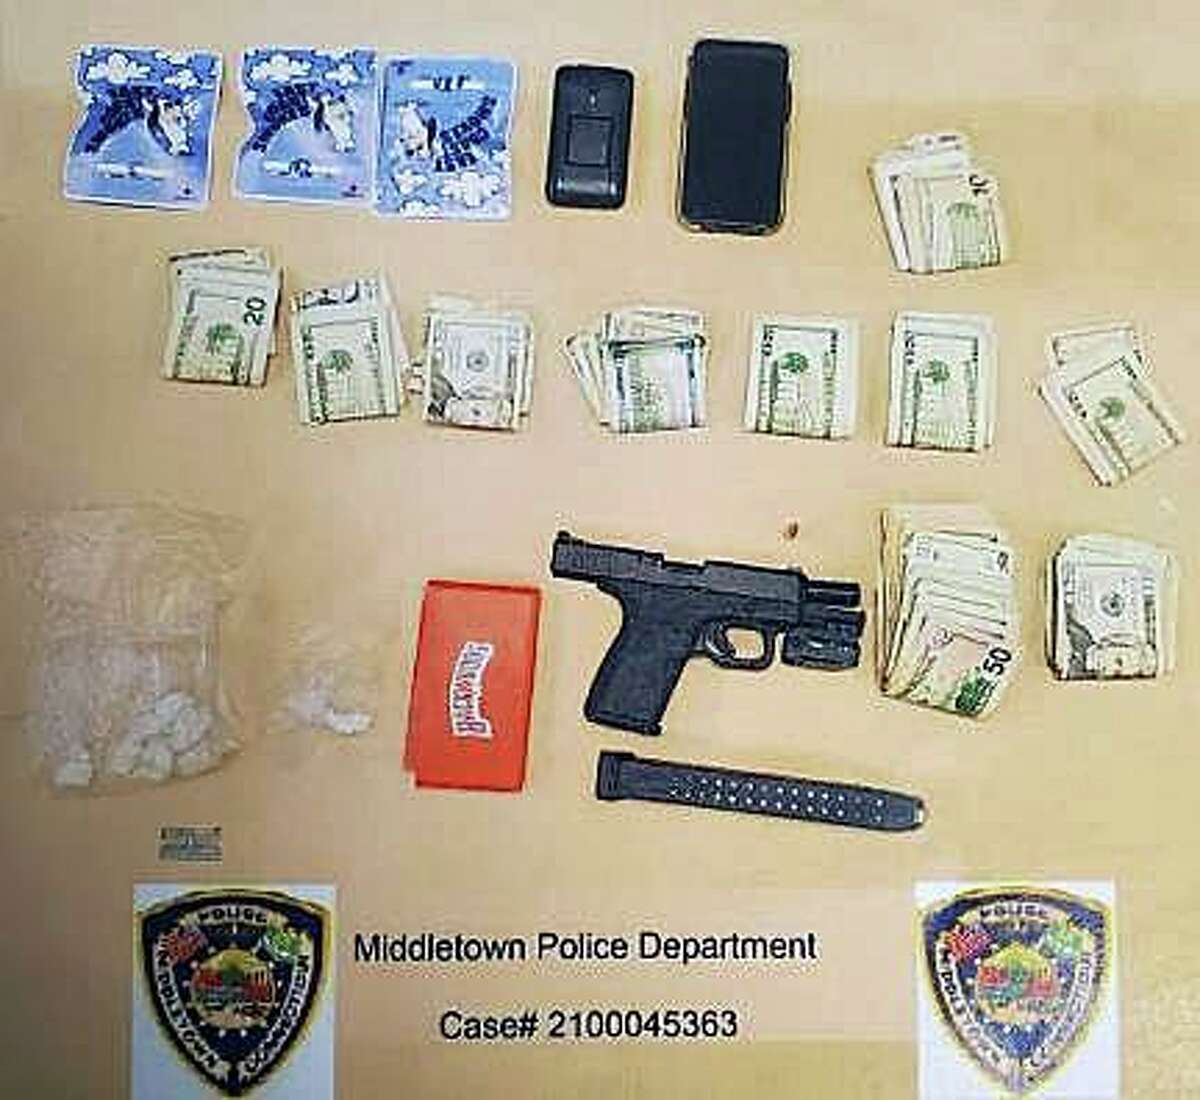 During a traffic stop Wednesday, Middletown police said they seized from a suspect's vehicle a handgun with extended 31-round magazine loaded with 25 rounds, and one in the chamber. They also allegedly discovered nearly 26 grams of crack cocaine, drug paraphernalia, multiple cellphones and a large amount of cash.